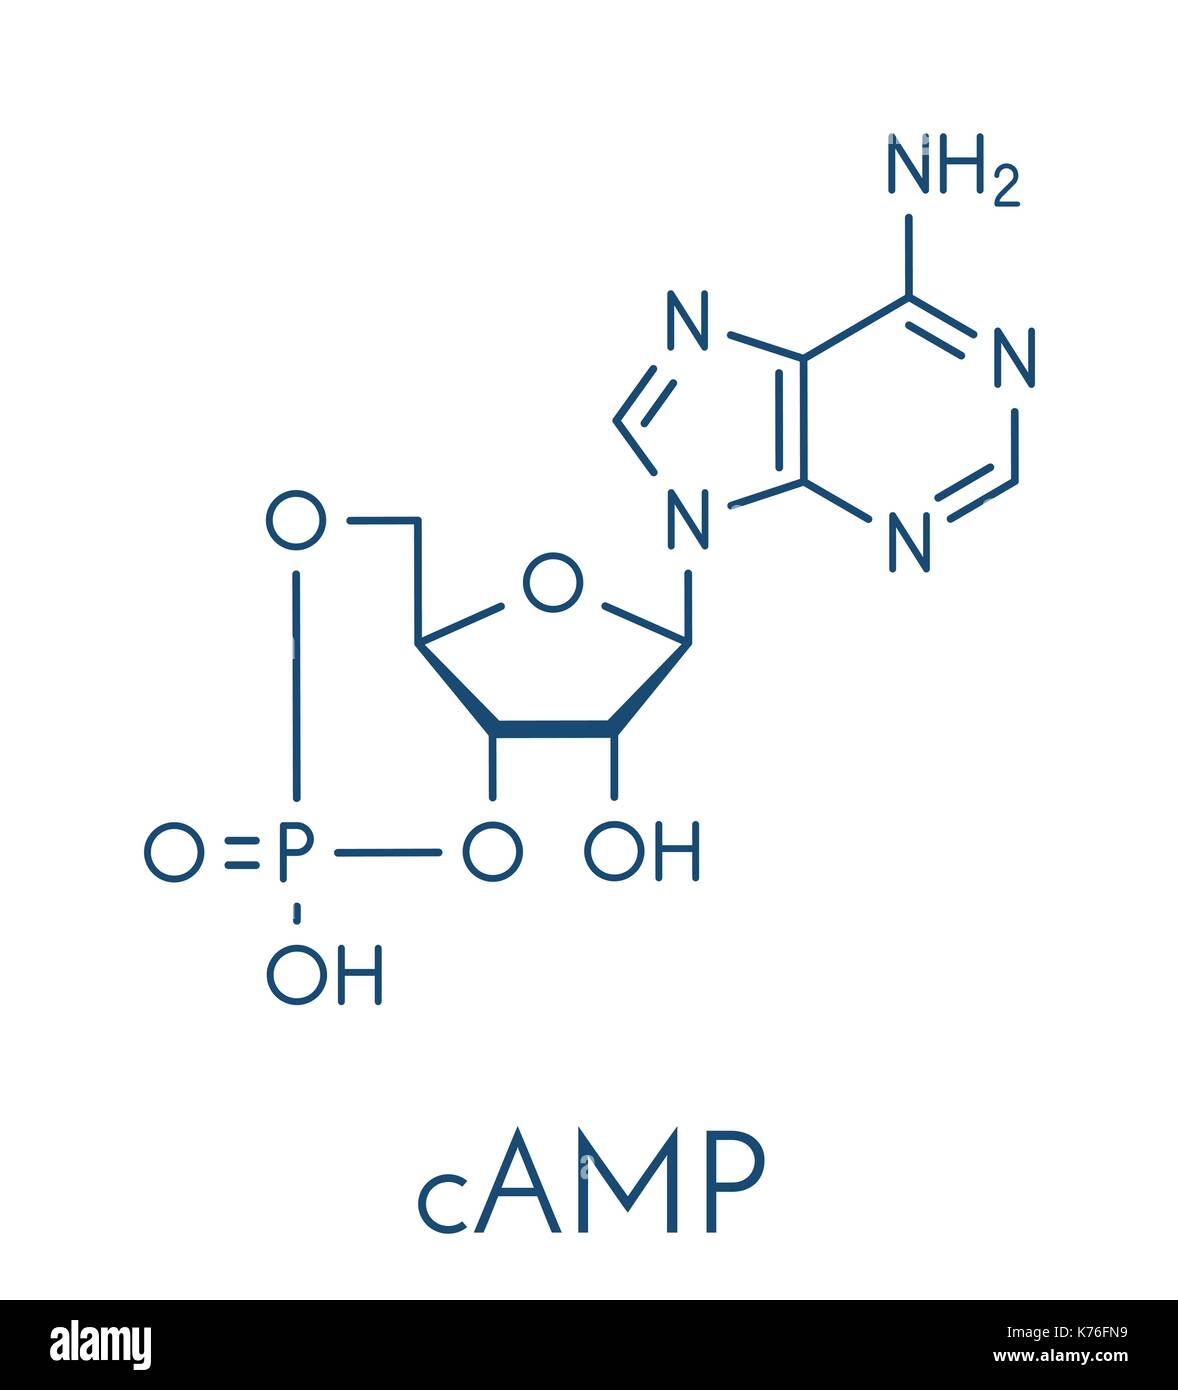 Cyclic adenosine monophosphate (cAMP) second messenger molecule. Plays role in intracellular signal transduction. Stock Vector